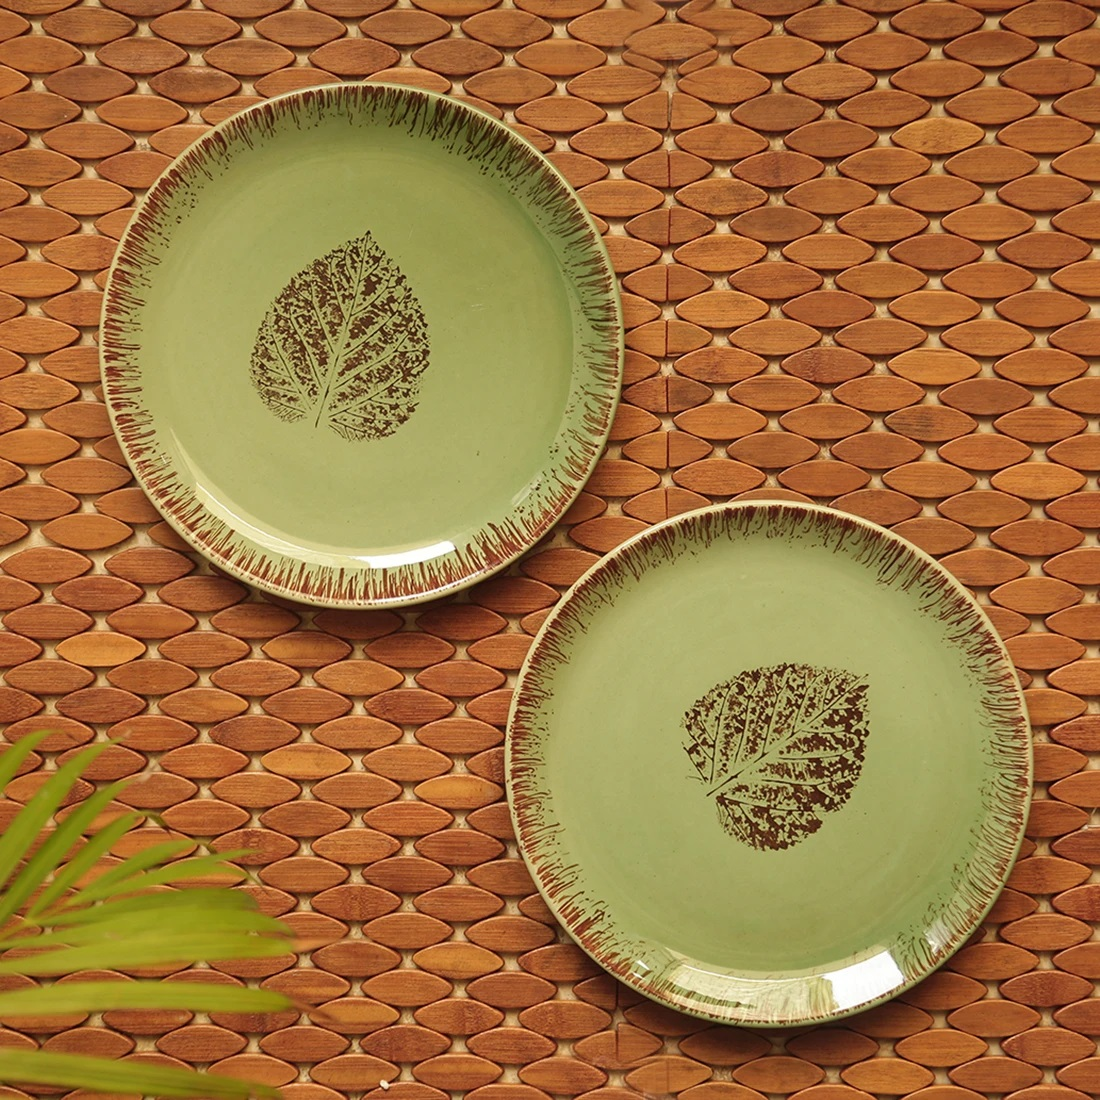 Moorni Banyan Leaves Hand-painted Studio Pottery Dinner Plates In Ceramic (Set of 2, Microwave Safe)